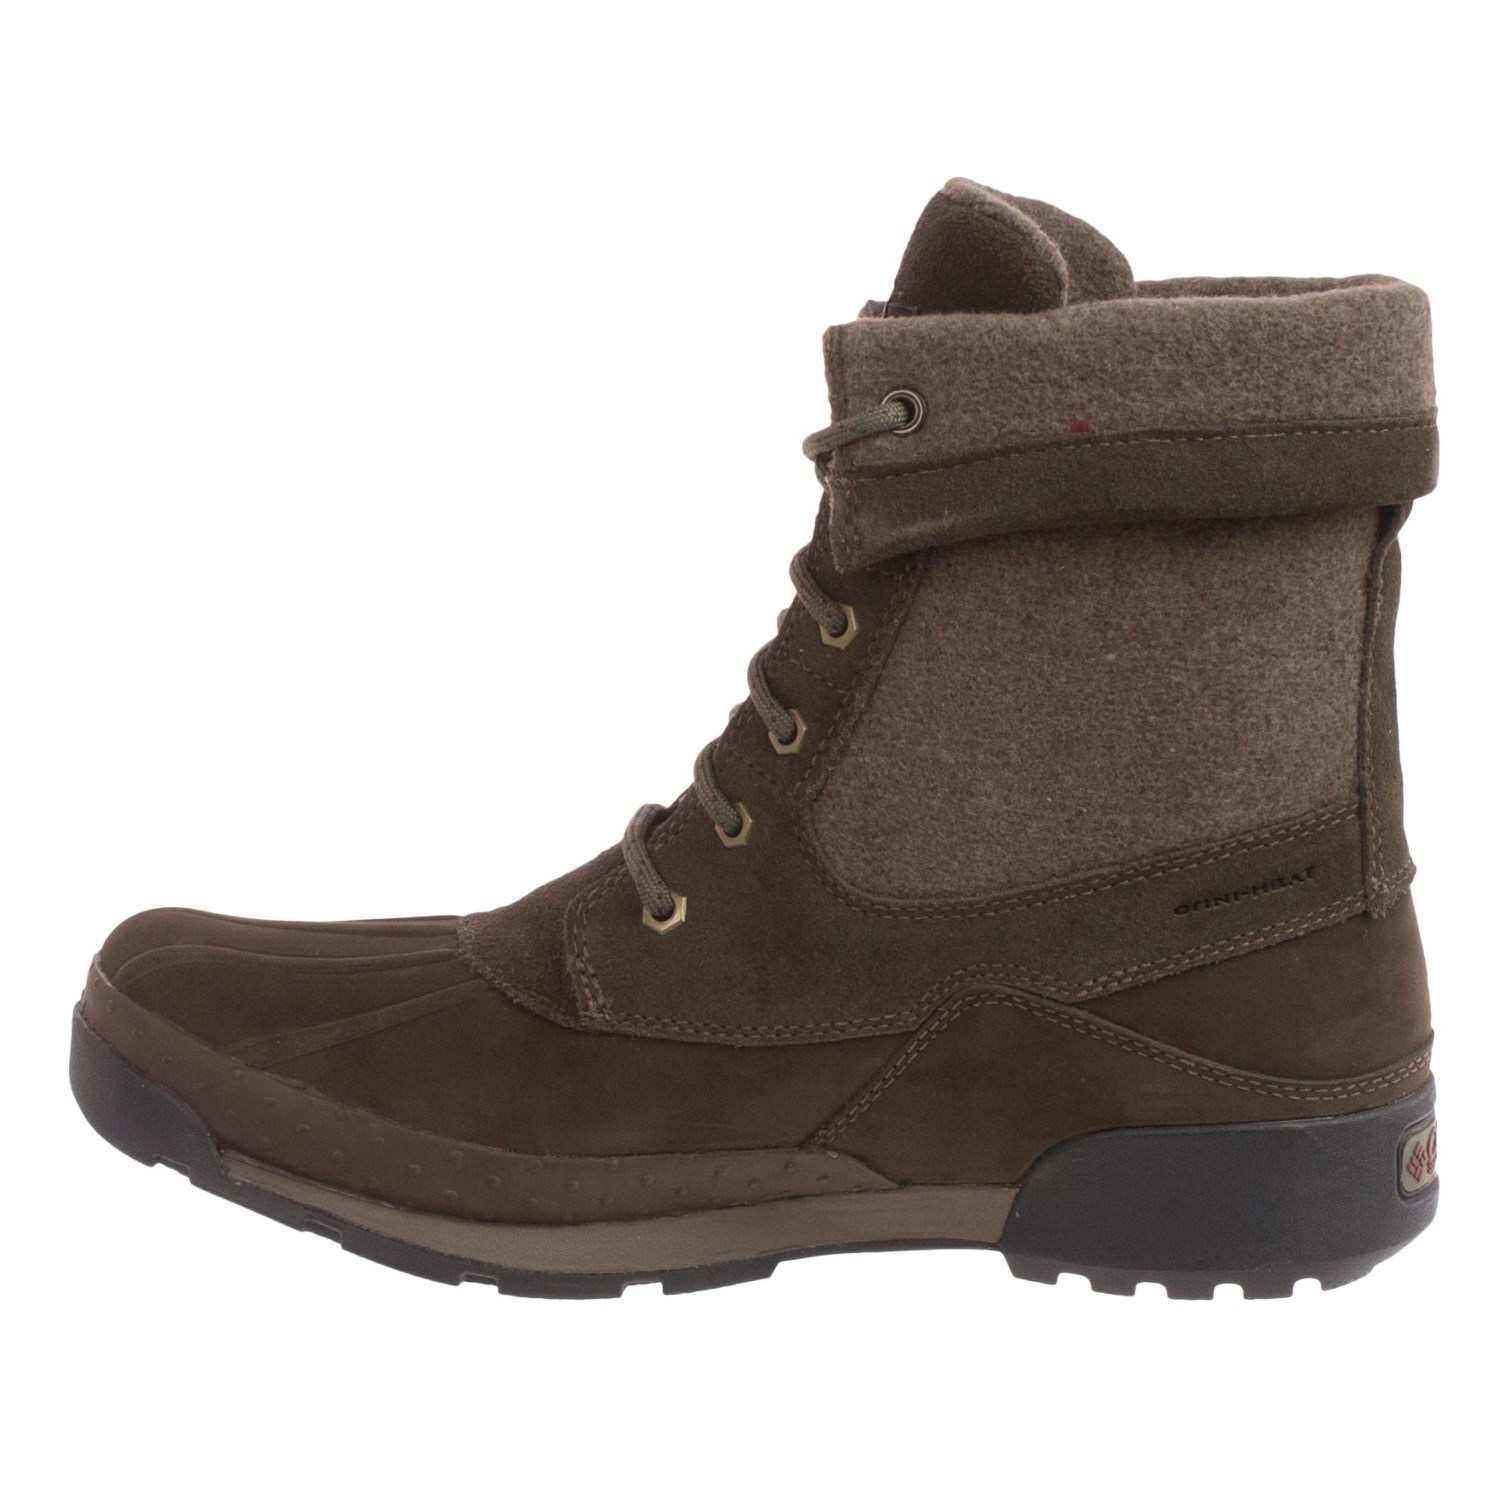 Columbia Bugaboot Women's Snow Boots | Division of Global